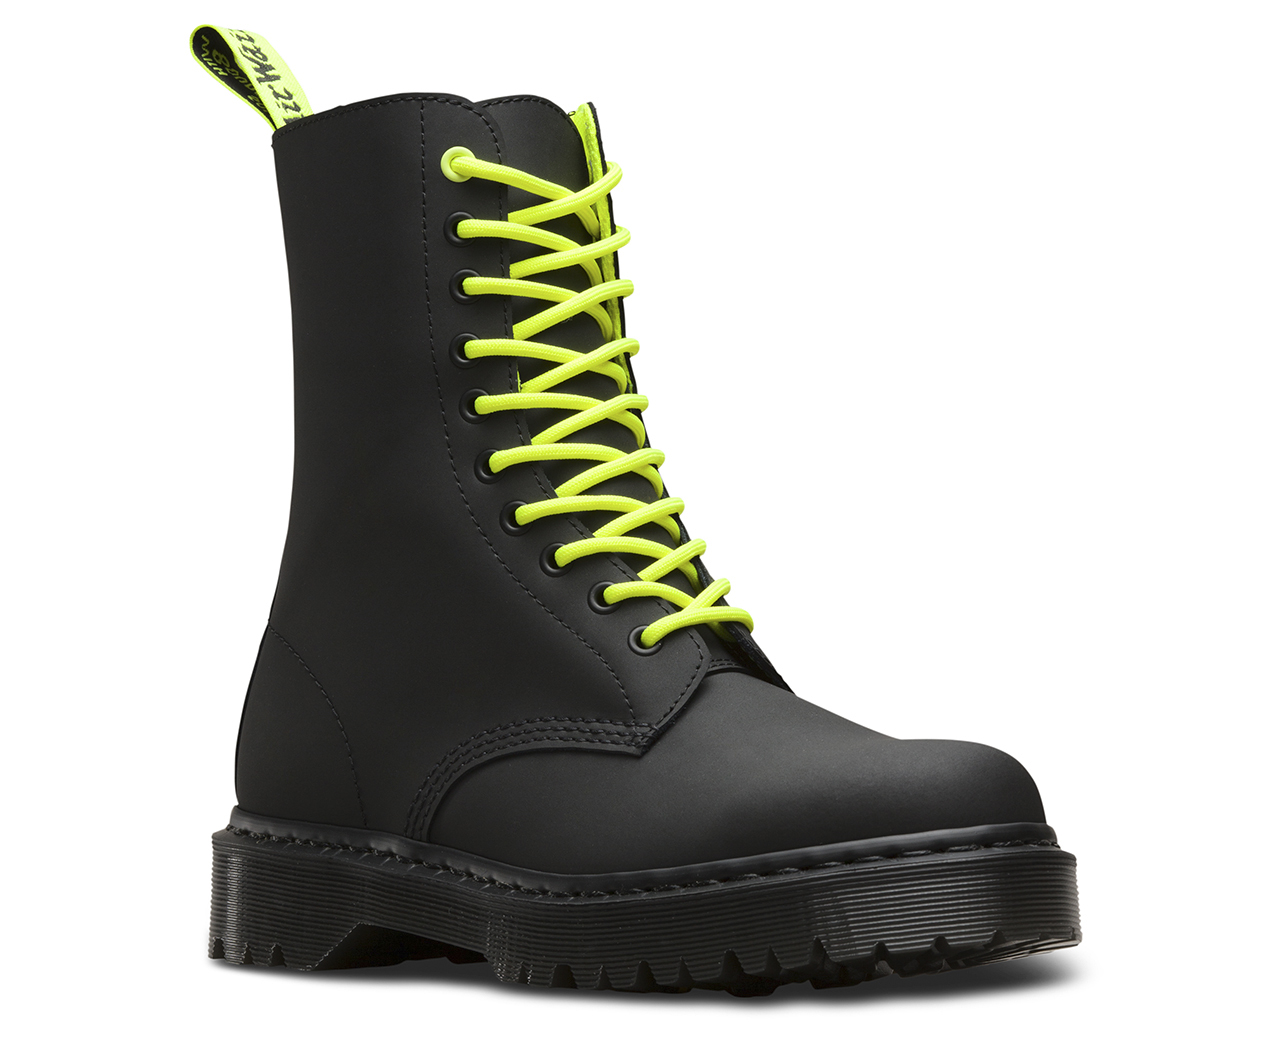 Dr Martens Neon Green Patent Leather Boots Size 6 1/2 Unisex Used